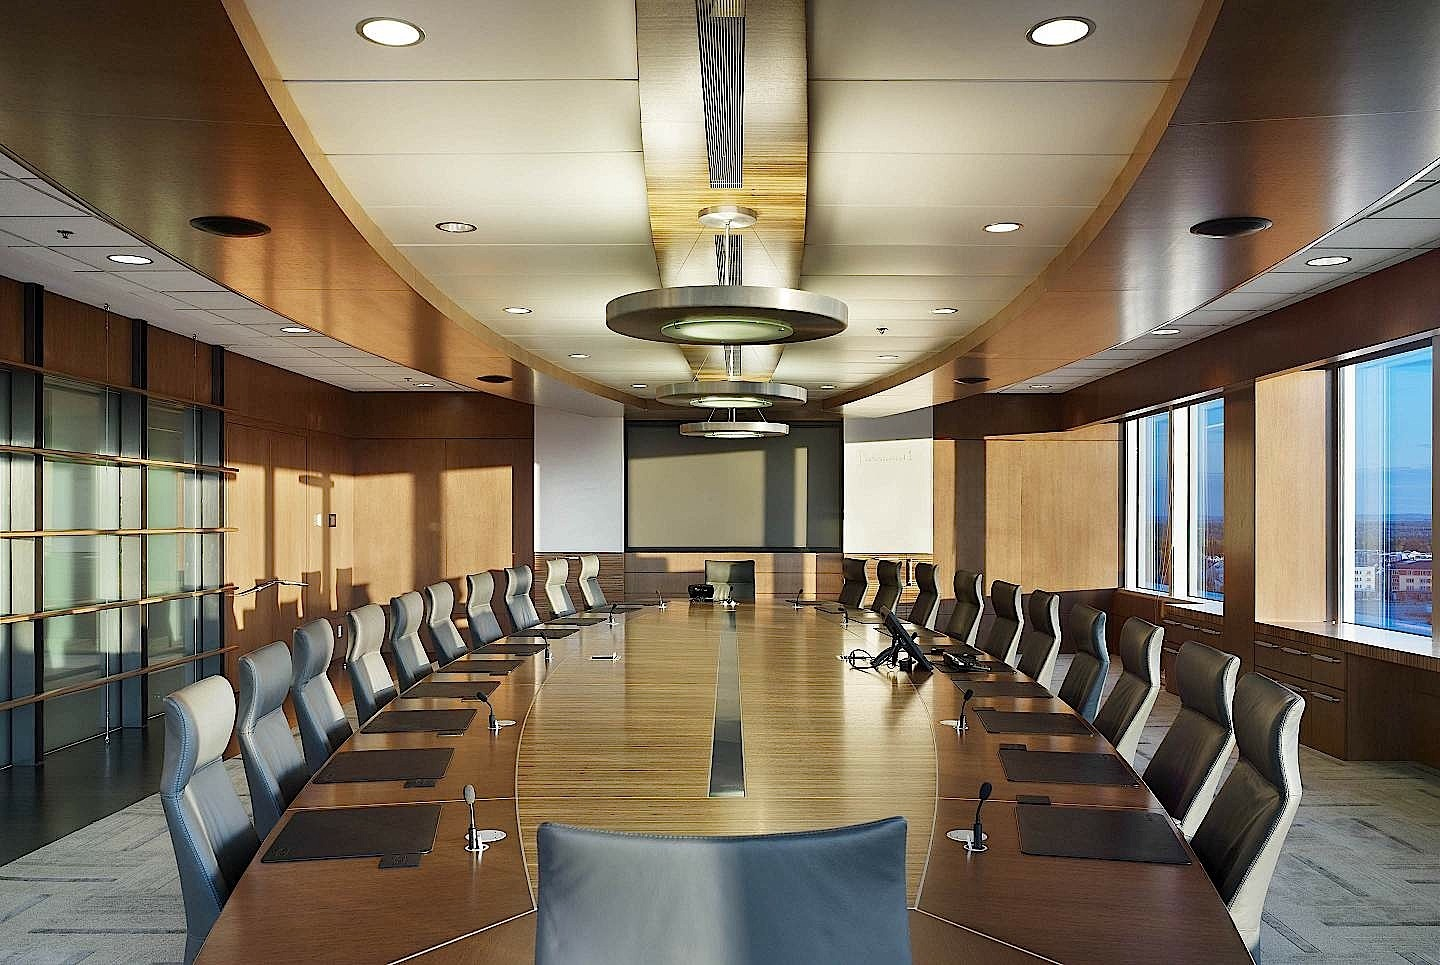 About Duckett Design Group / Image of a boardroom